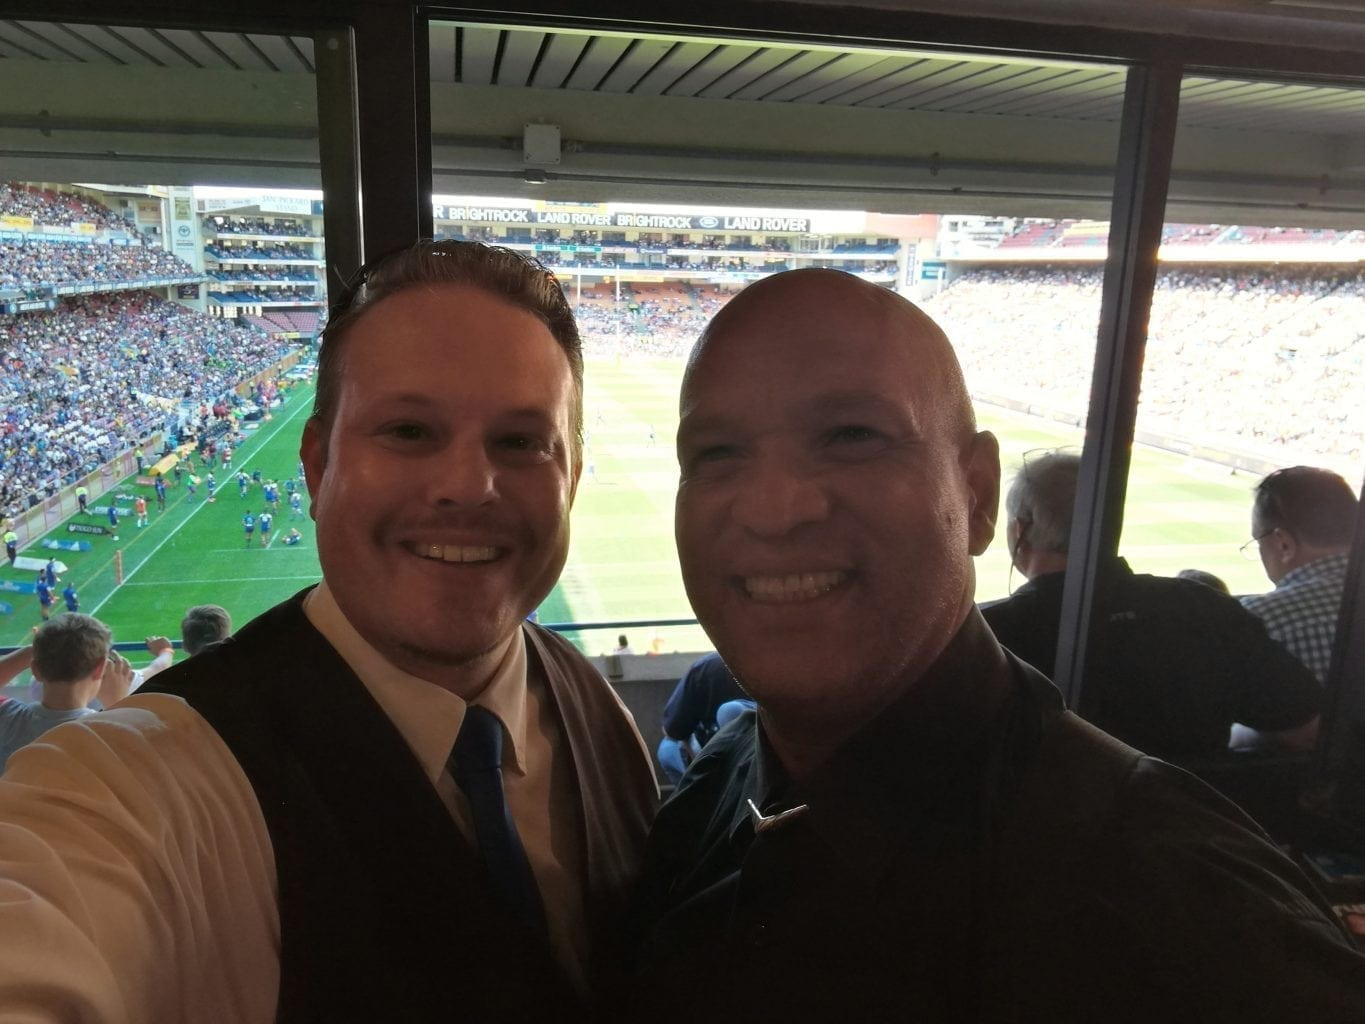 Cape Town Magic Club magicians, Marcel Oudejans & Andrew 'Magic Man' Eland, performed in the commercial suites at DHL Newlands on 17 March 2018